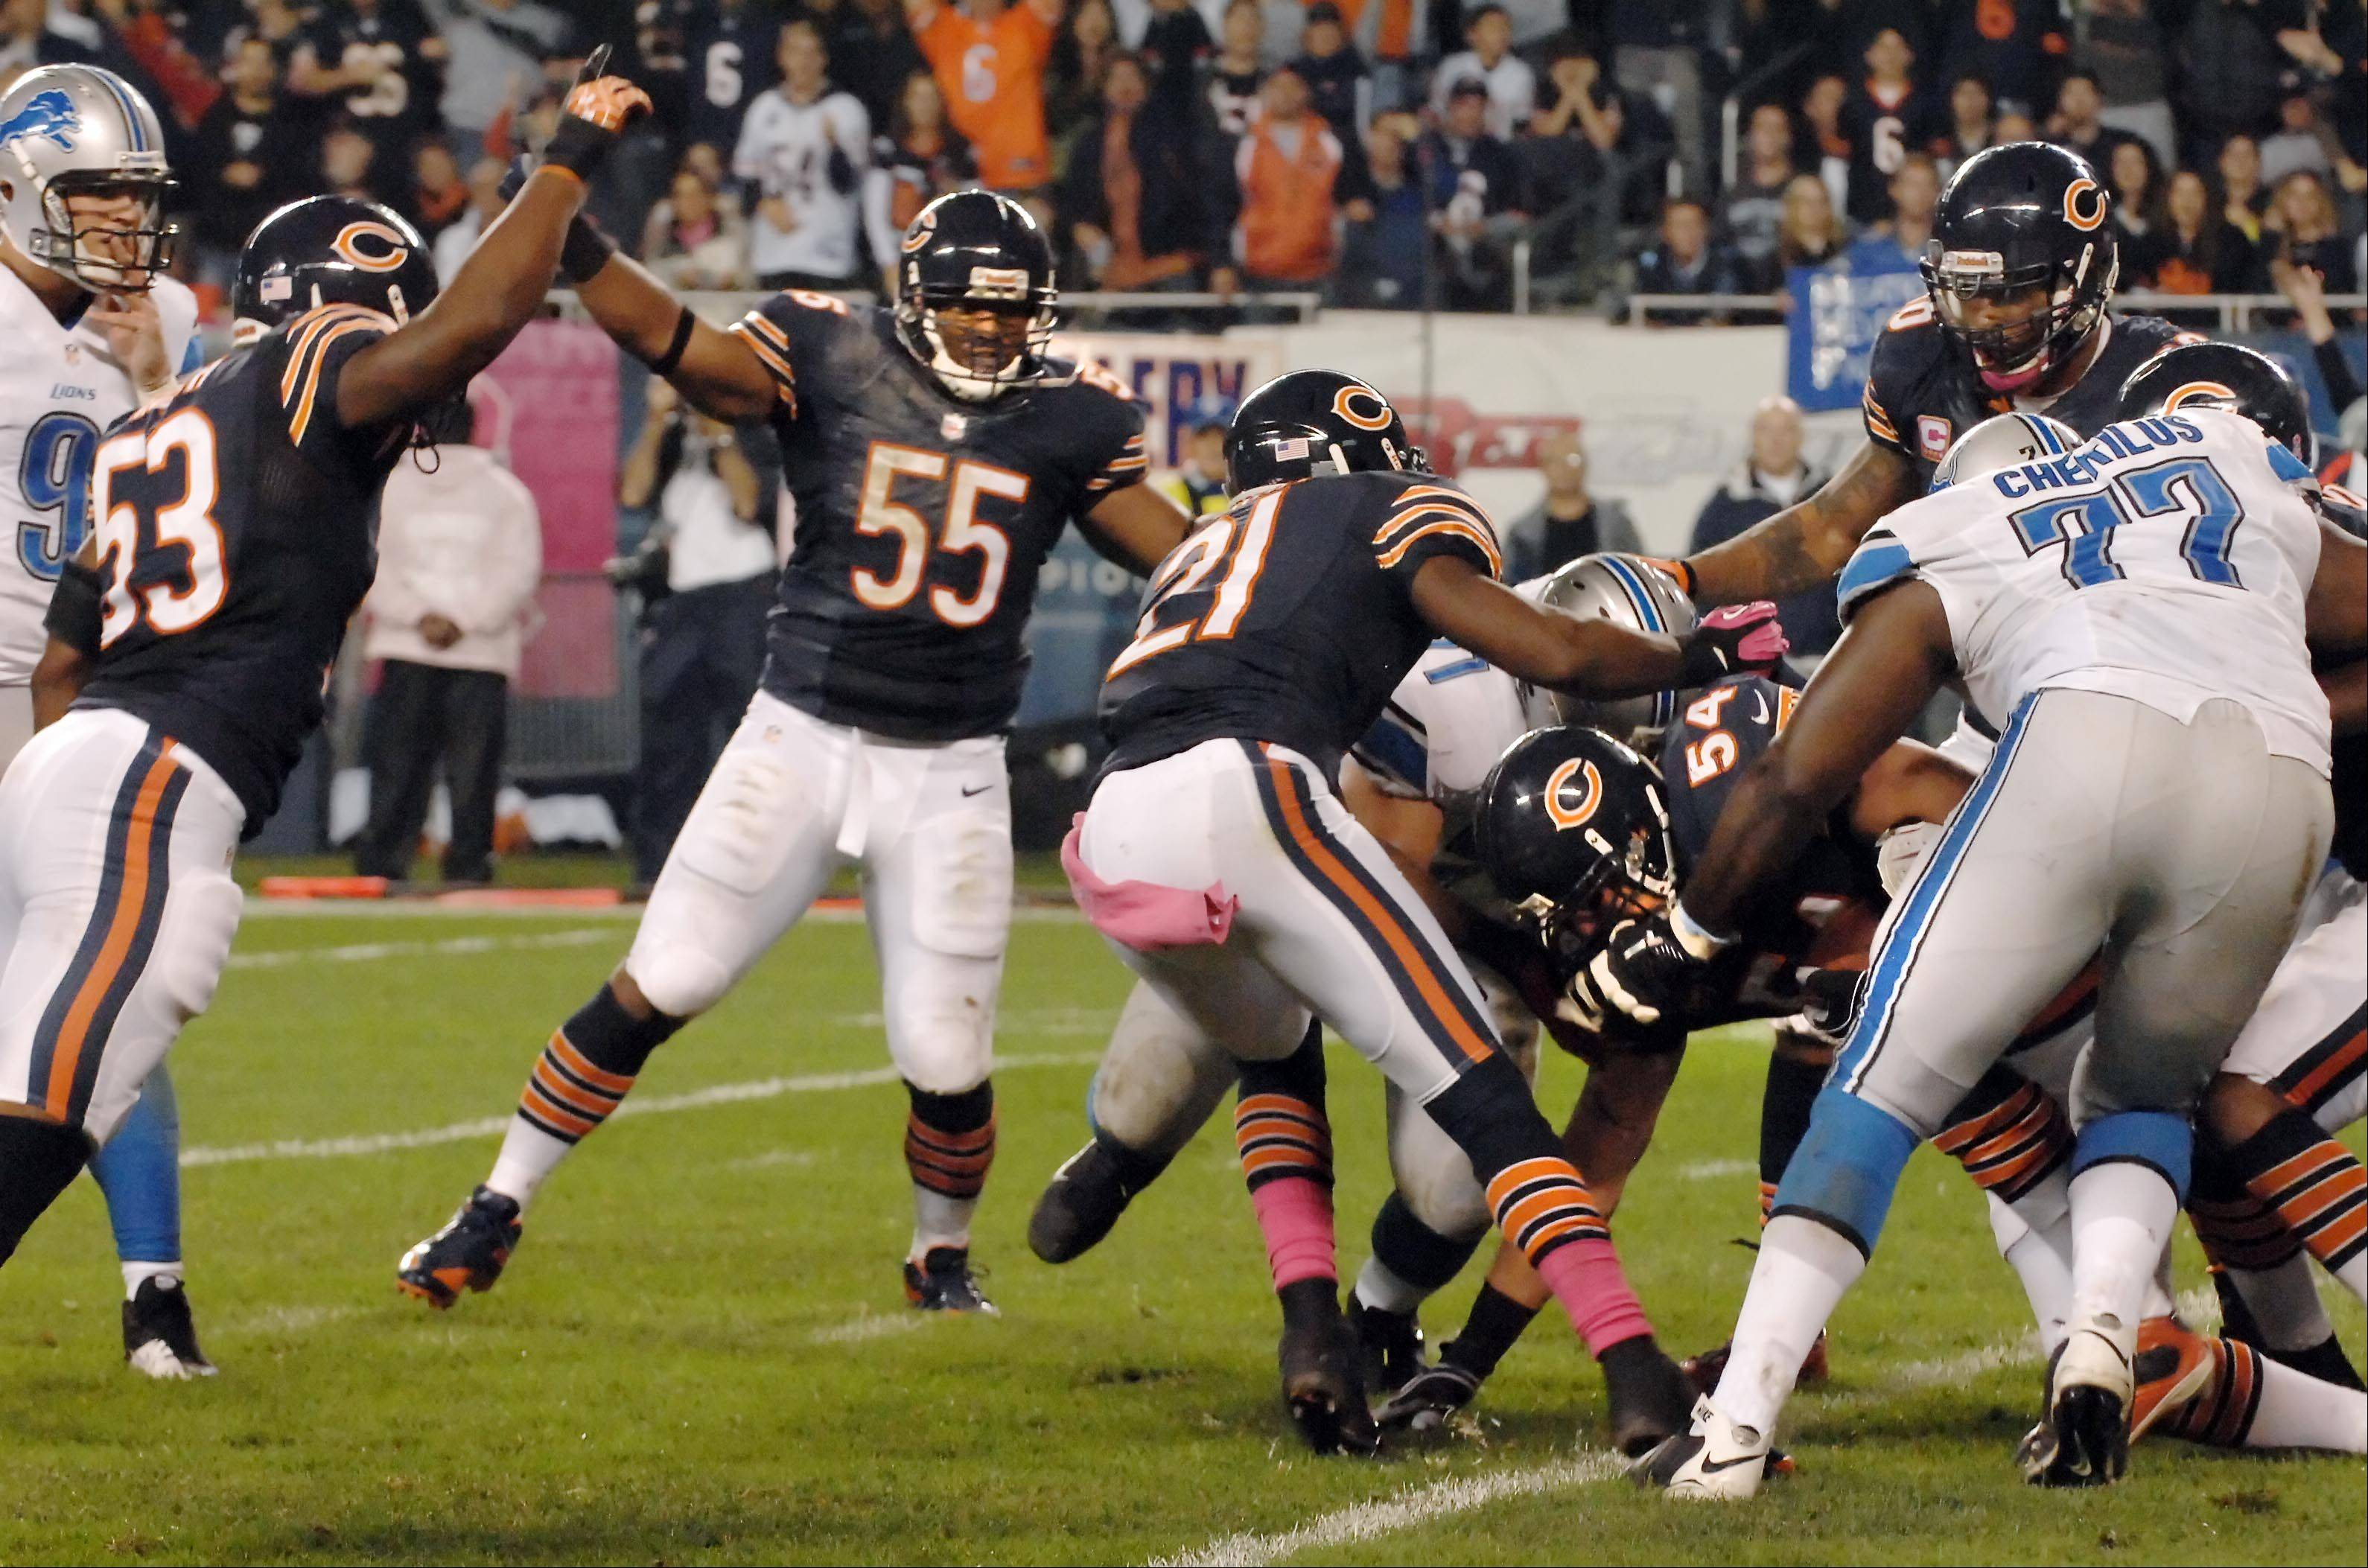 Chicago Bears middle linebacker Brian Urlacher scrambles out of the crowd with a fumble recovery at the goal line as teammates Nick Roach and Lance Briggs celebrate late in the game.